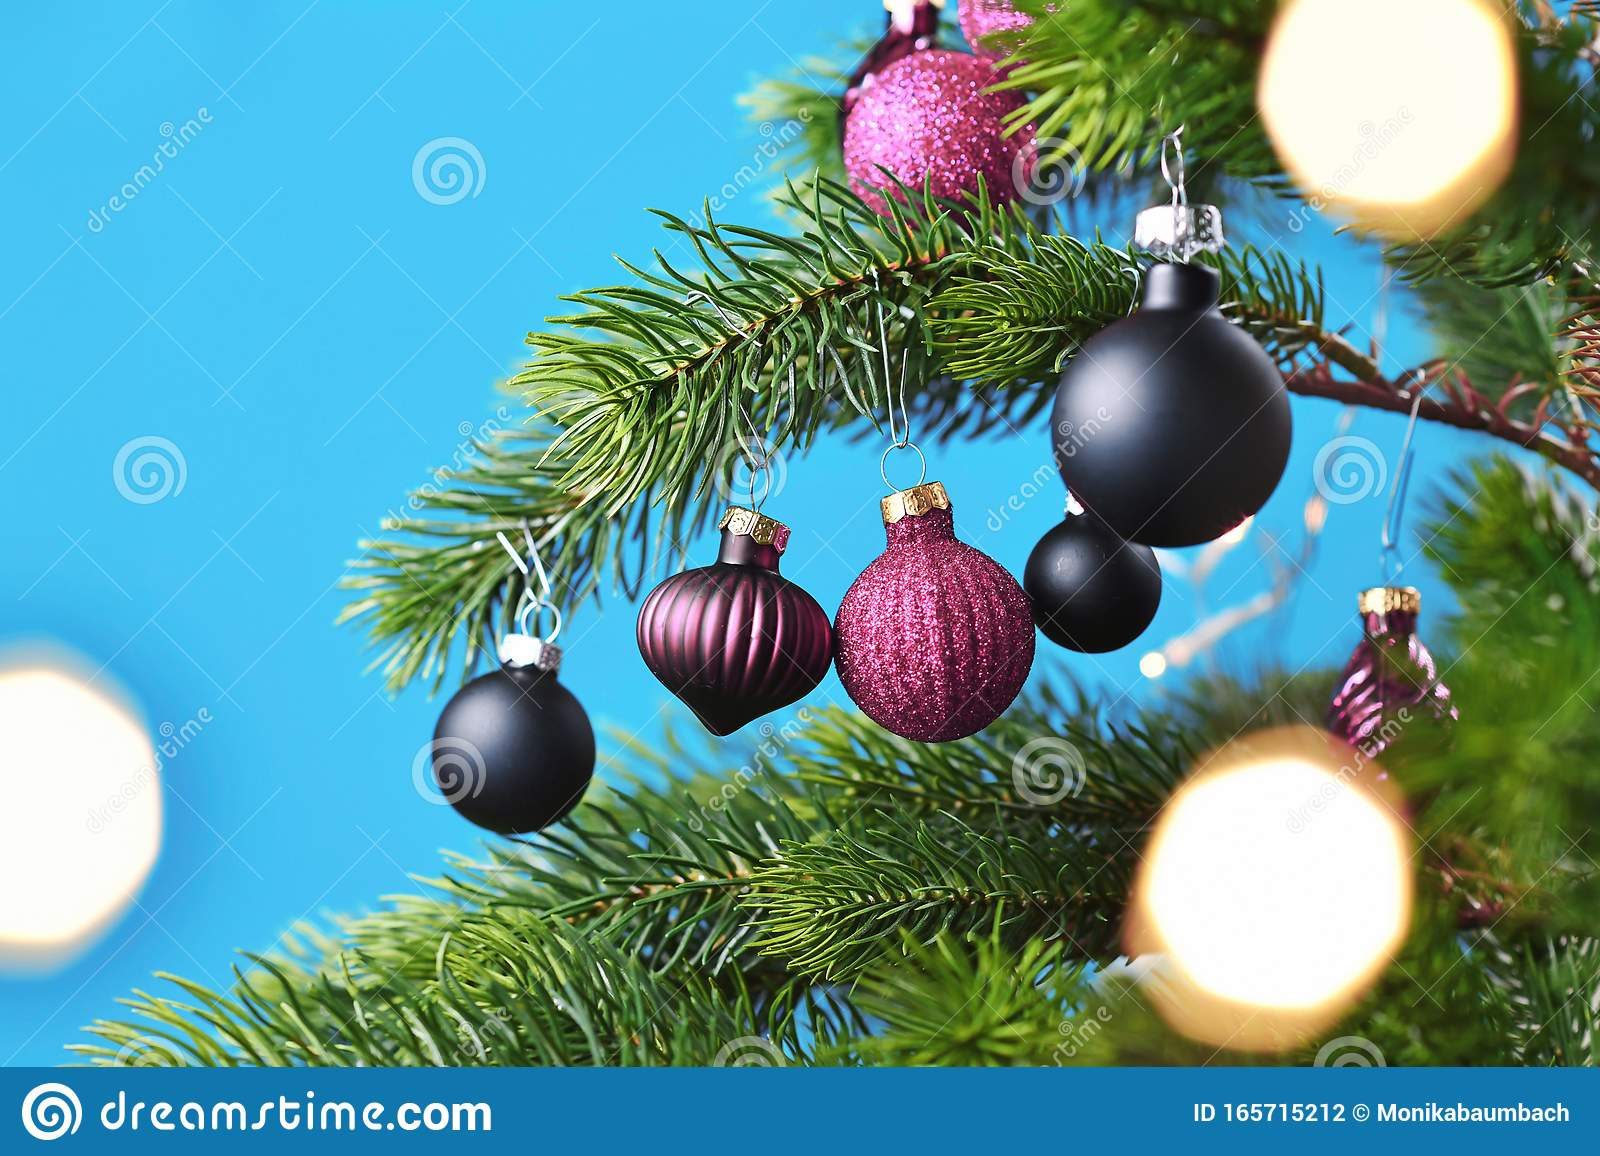 Purple And Black Glass Tree Bauble With Decorated Christmas Tree With Other Seasonal Tree Ornaments On Blue Background Stock Photo Image Of Background Ball 165715212